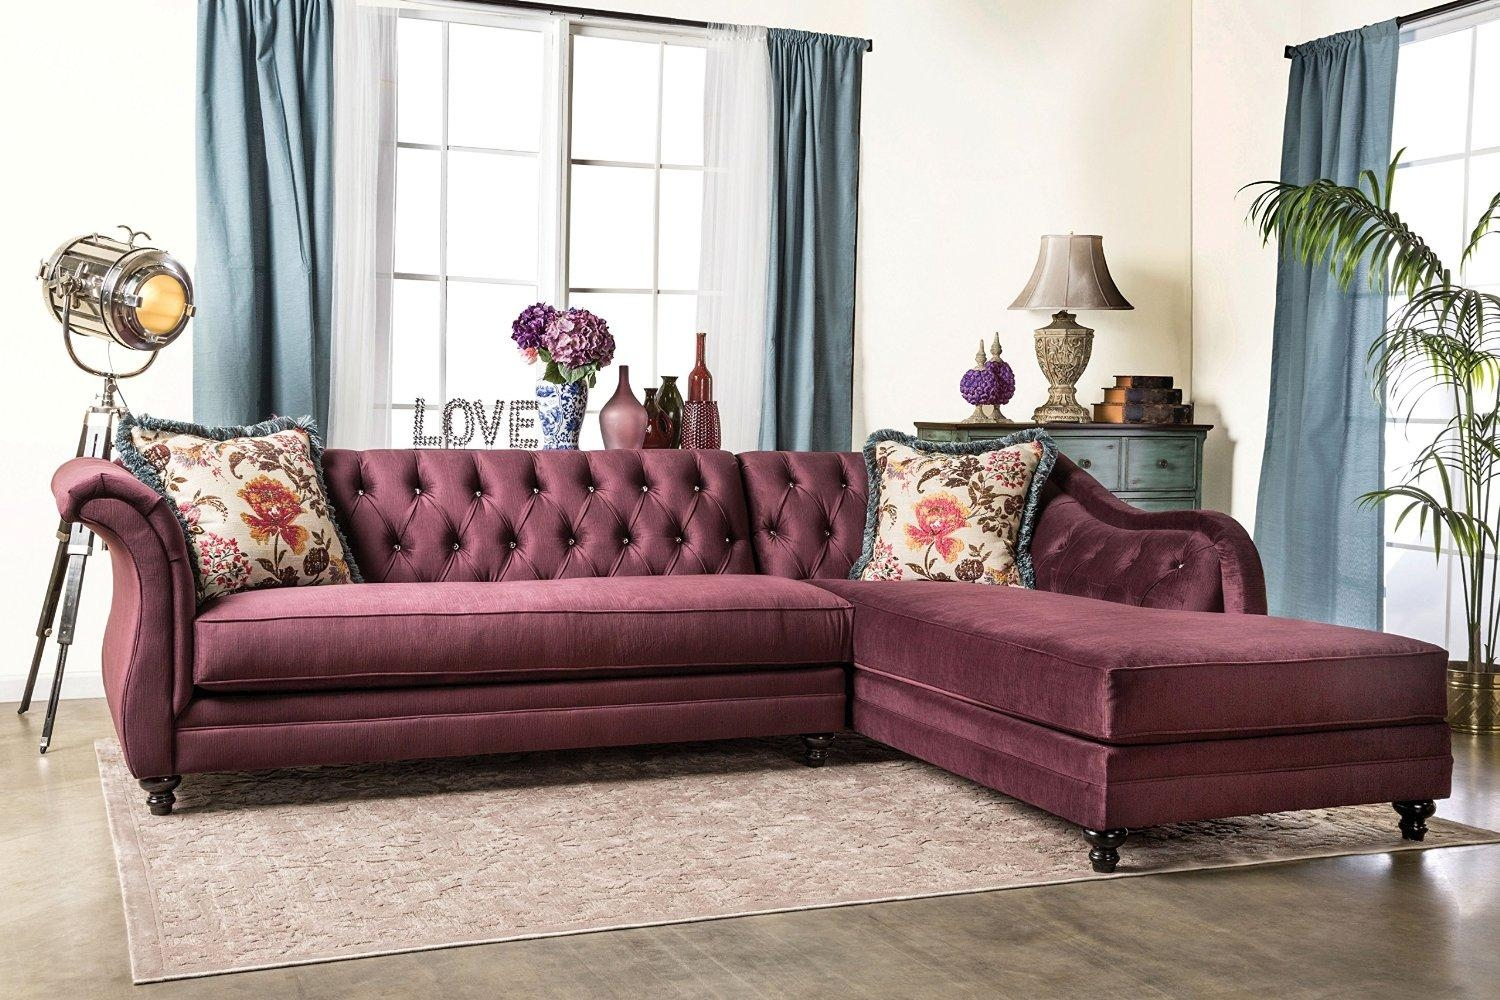 25 Best Chesterfield Sofas To Buy In 2017 Throughout Leather Chesterfield Sofas (View 14 of 20)